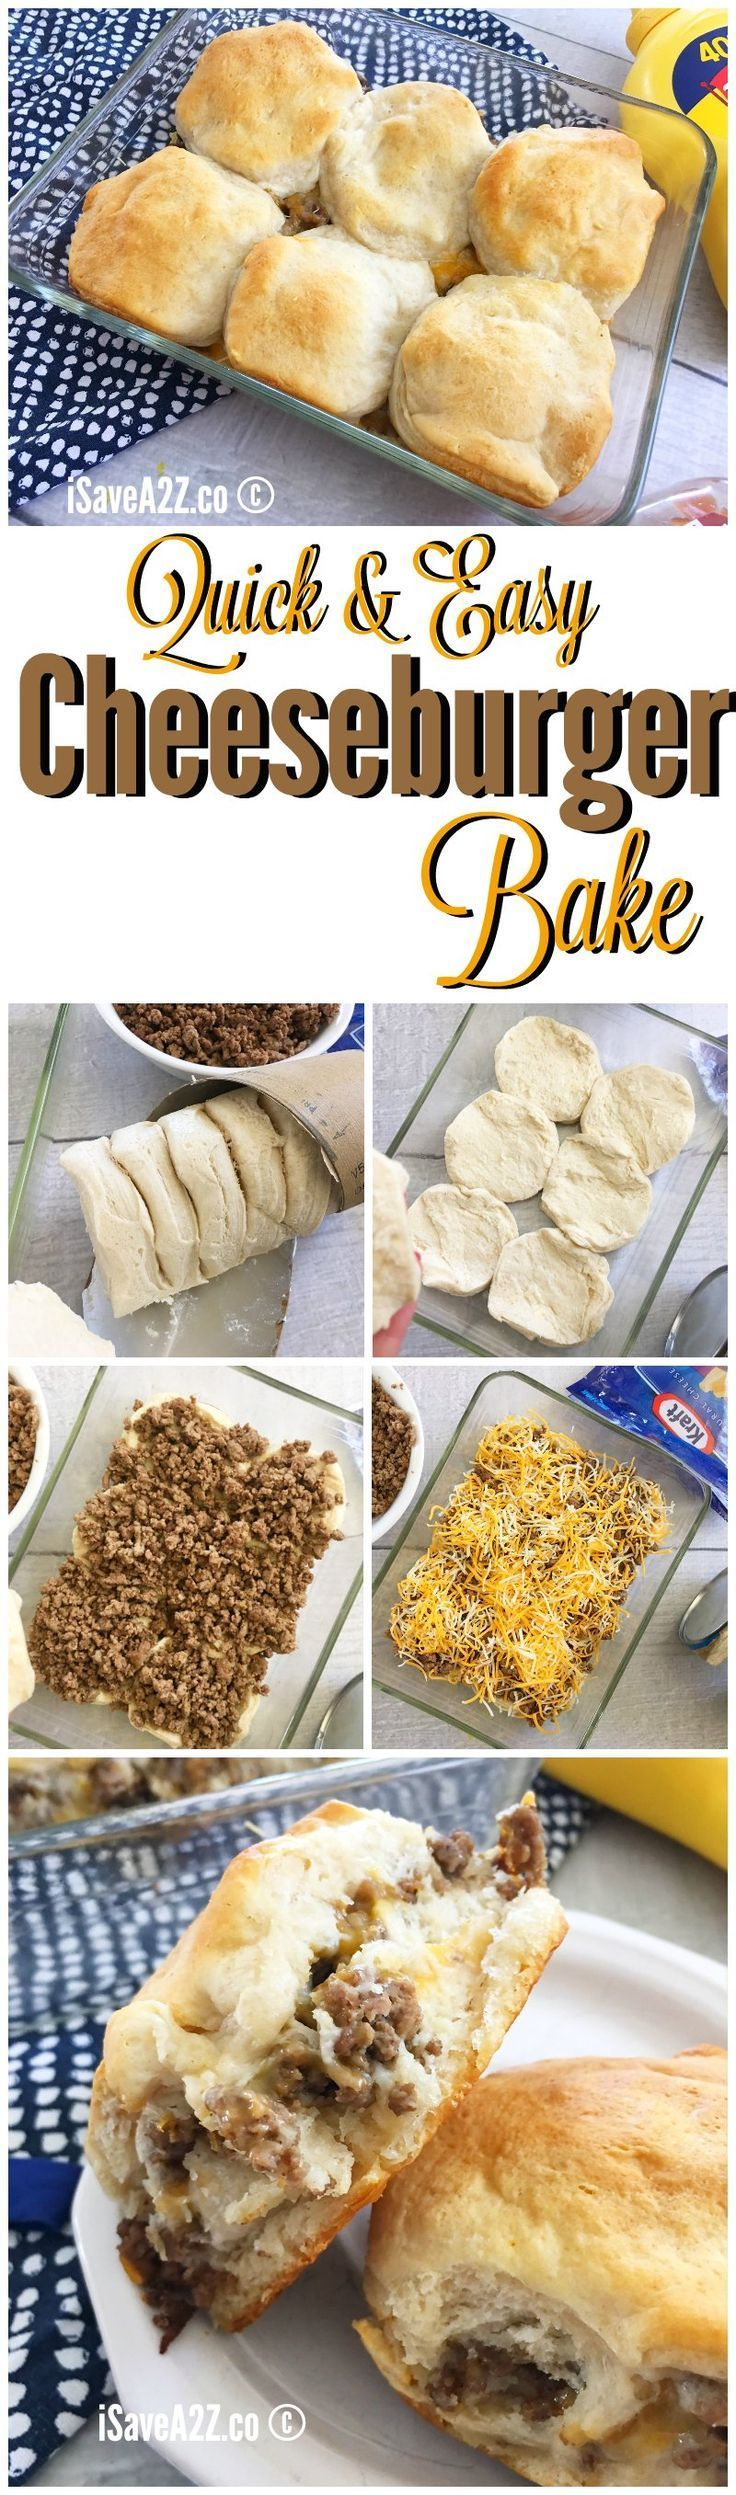 Quick and Easy Cheeseburger Bake Casserole | Recipe | Future Recipes | Pinterest | Casserole recipes, Recipes and Casserole